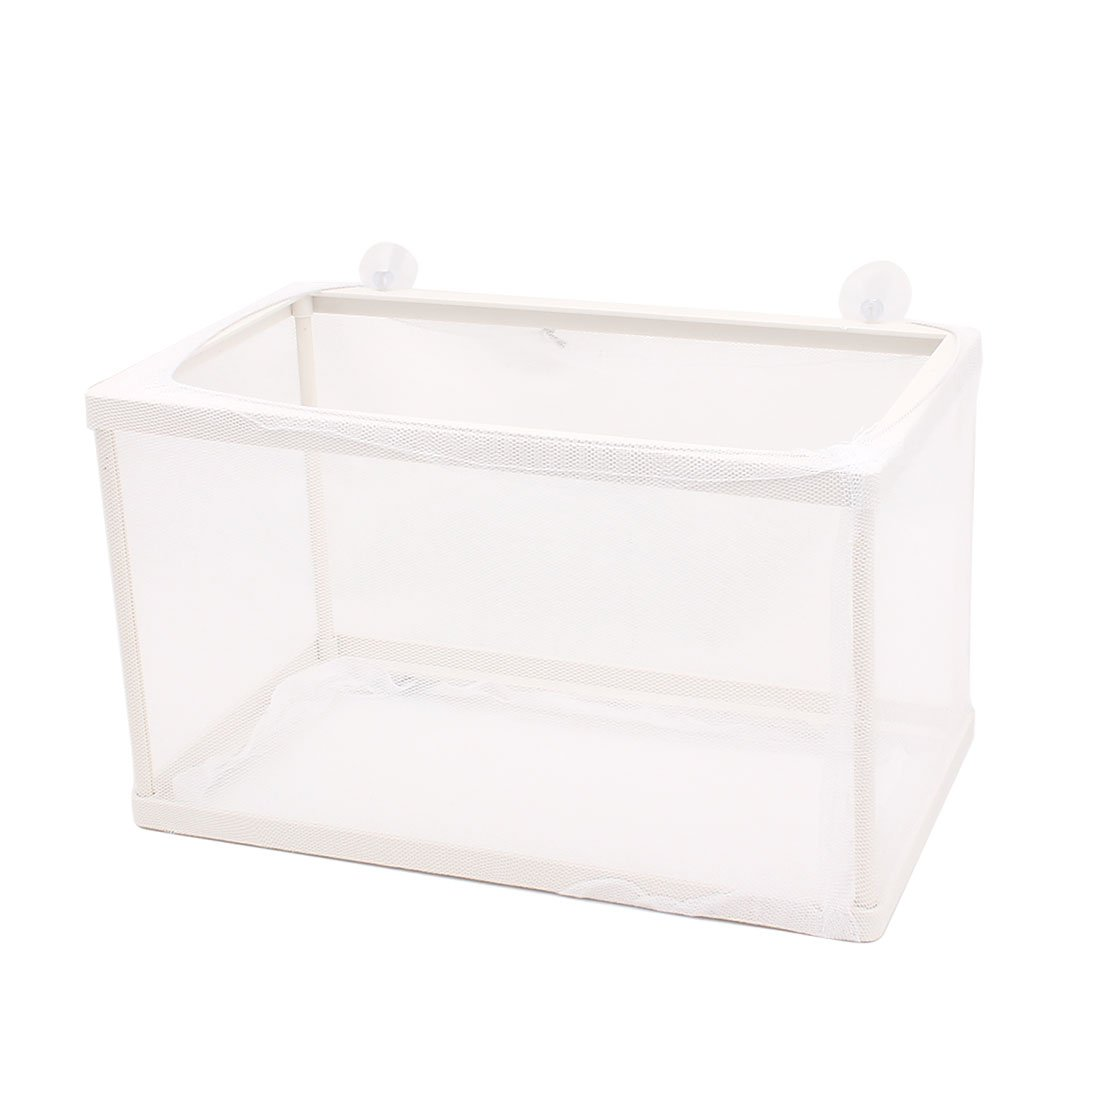 uxcell Aquarium Fish Tank Plastic Floating Isolation Divider Breeding Box Net